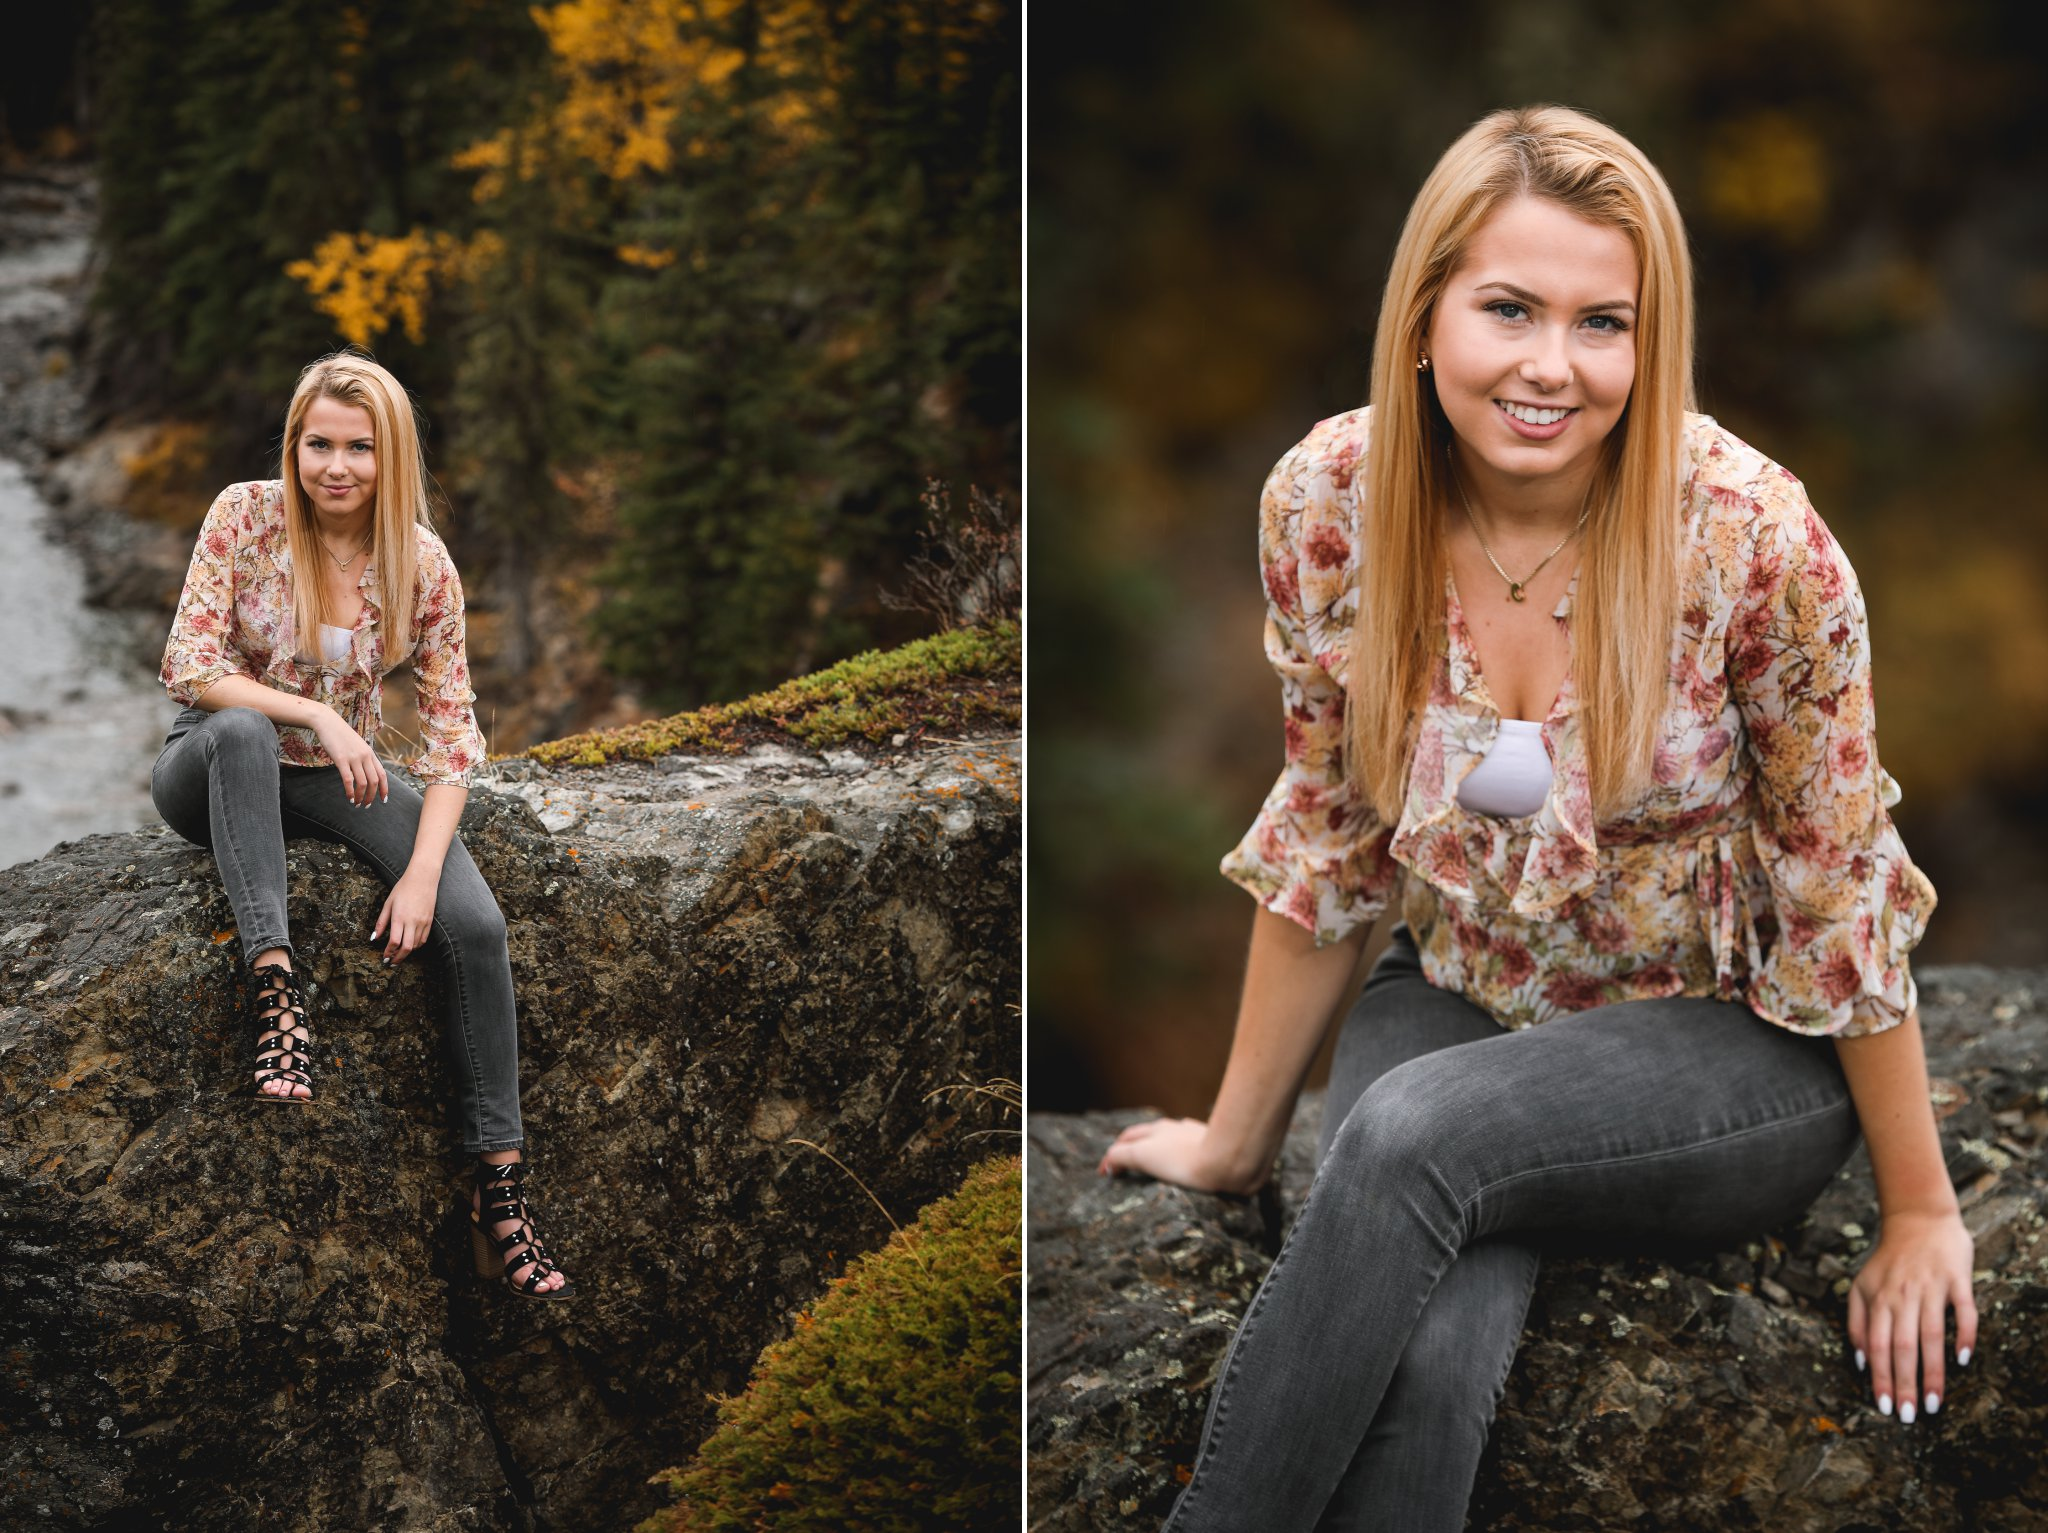 AshleyDaphnePhotography Calgary Photographer Wedding Family Senior Portraits Rocky Mountains Sheep River Falls Autumn Fall_0005.jpg